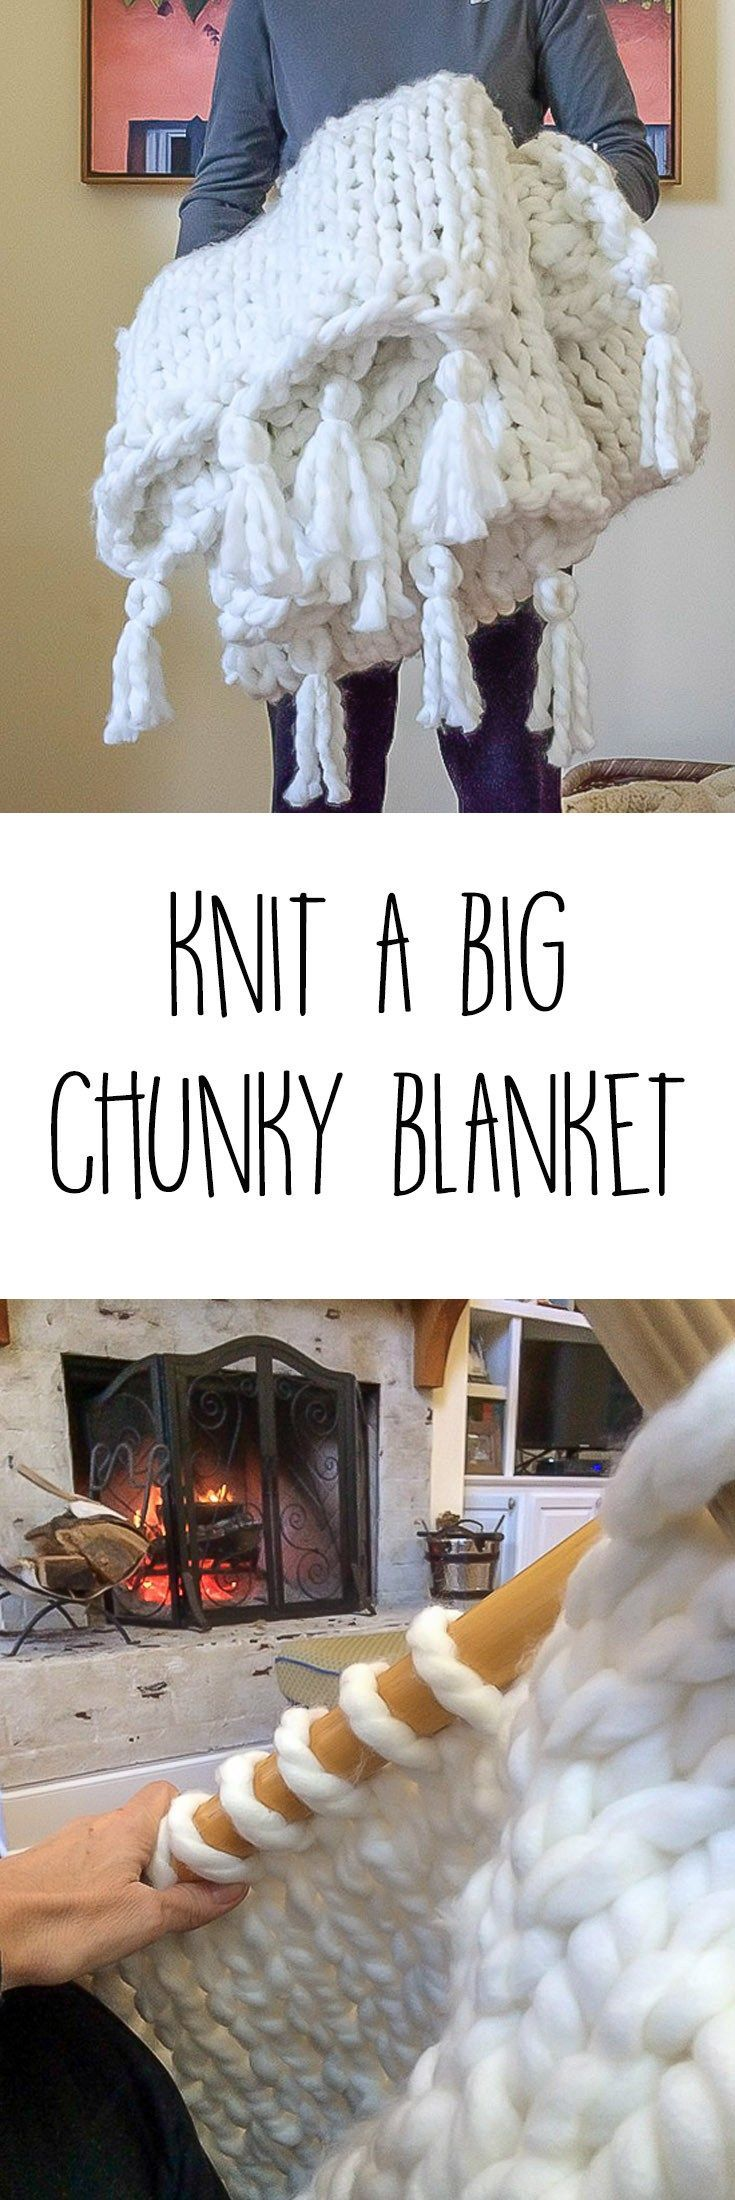 I love a big, chunky knit blanket. Illustrated instructions (with video) to diy a tasseled thick, cozy and chunky knit blanket...a simple one day project. #downloadablepattern #knitting #knittingpattern